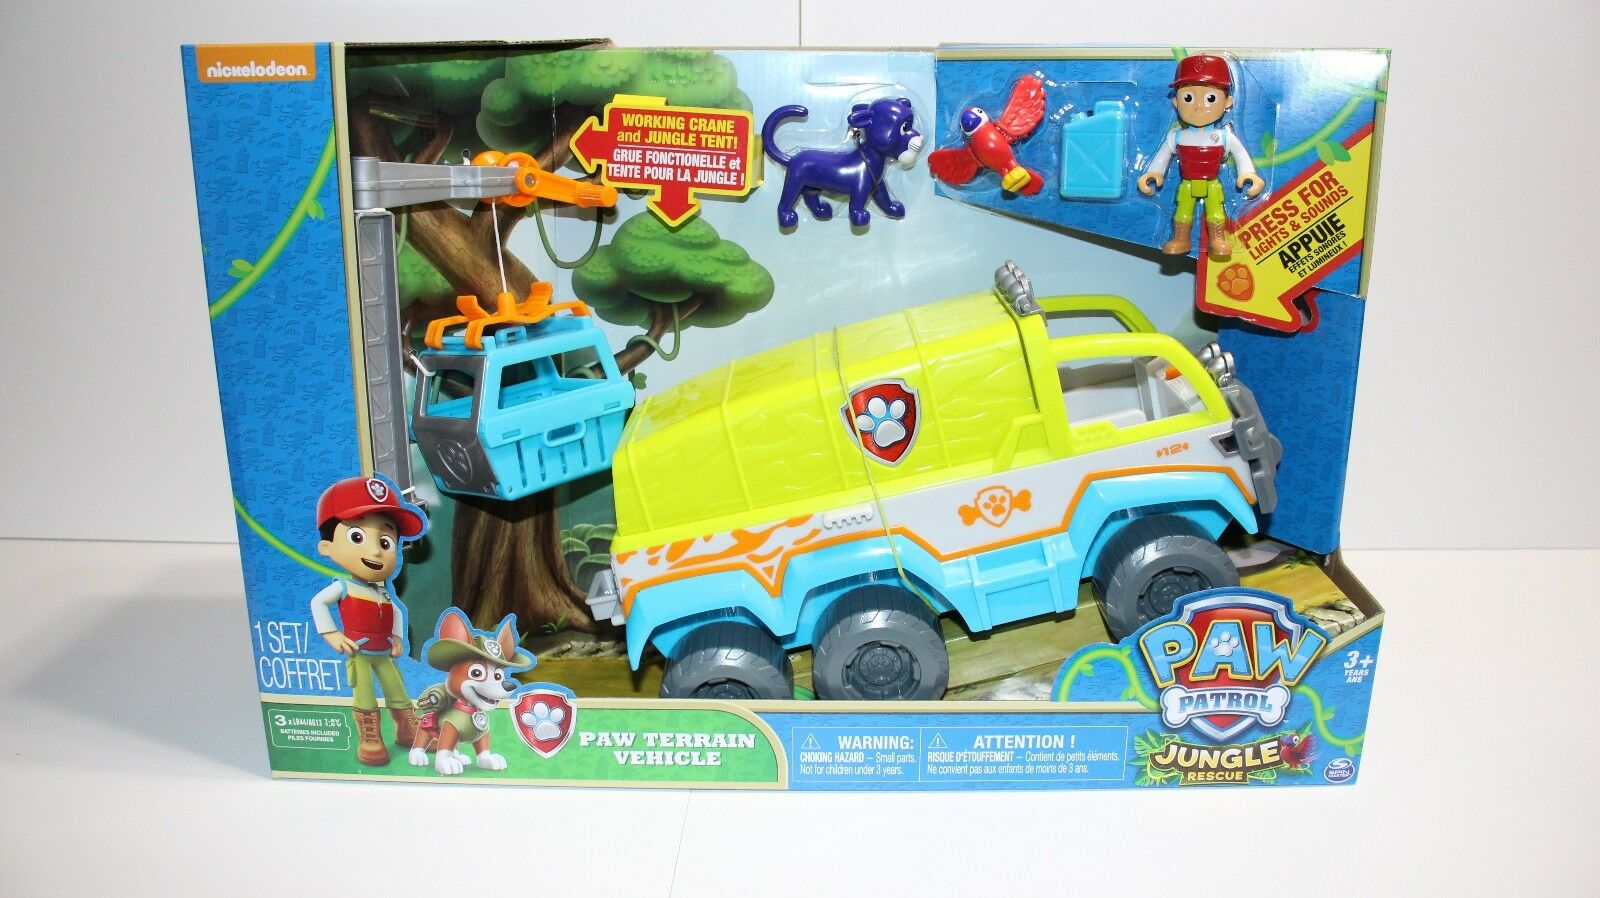 Paw Patrol Patrol Patrol Jungle Rescue Ryder Terrain Vehicle Playset New by Spin Master 261afb